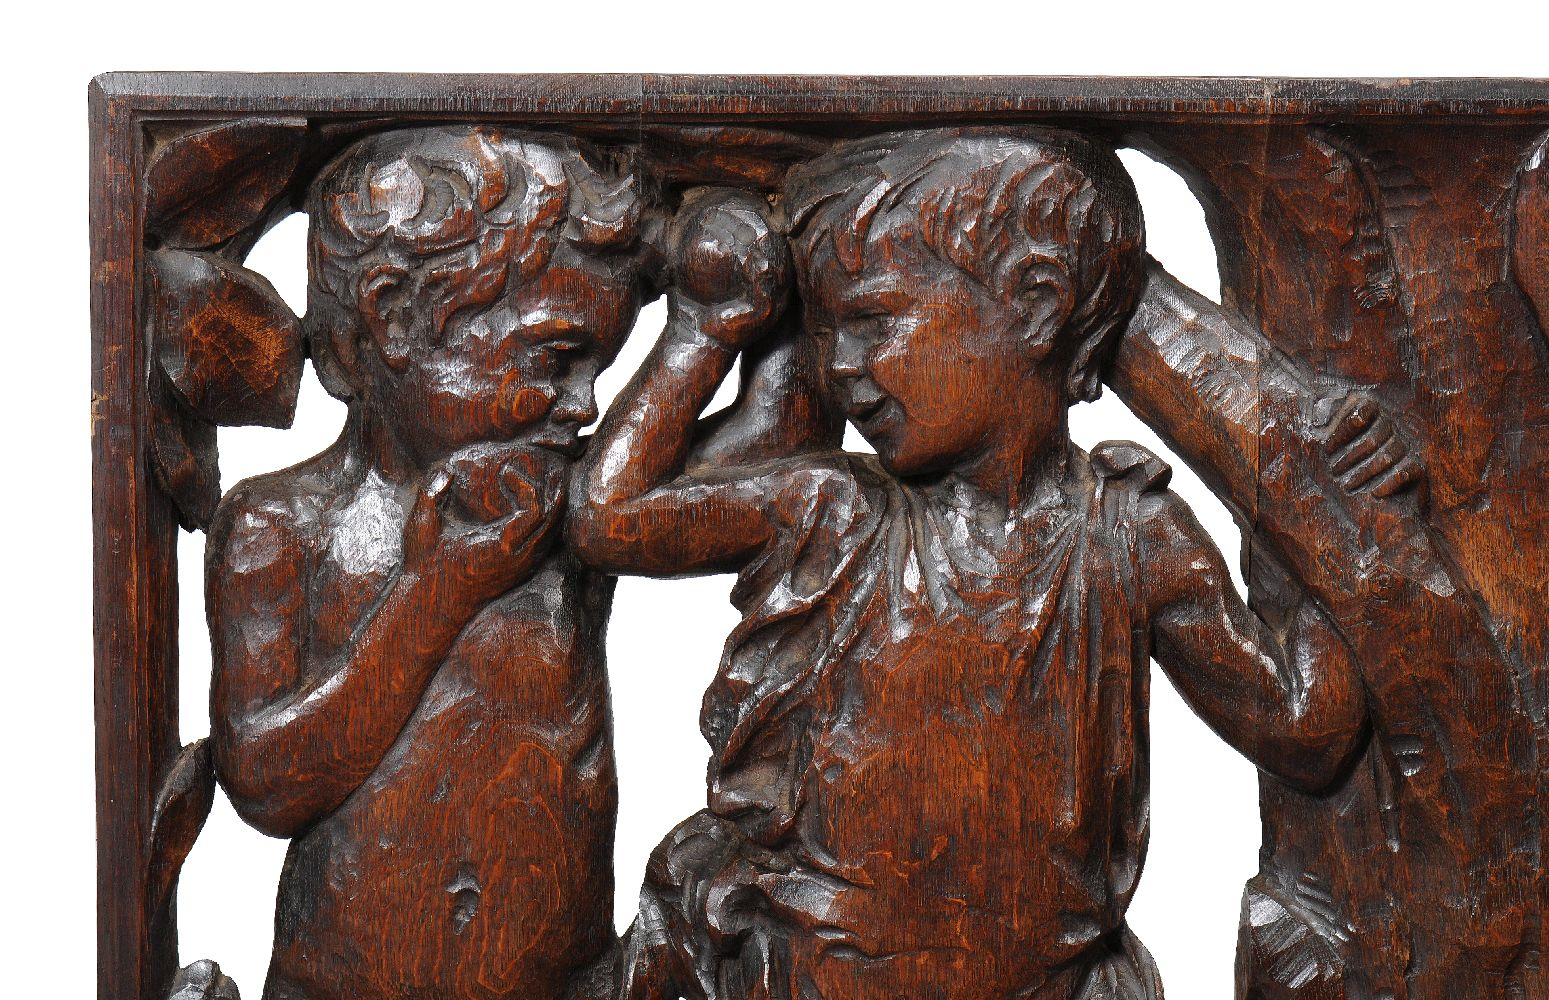 Lot 246 - A pair of Arts & Crafts carved oak panels, circa 1900, possibly stair panels, each rectangular panel